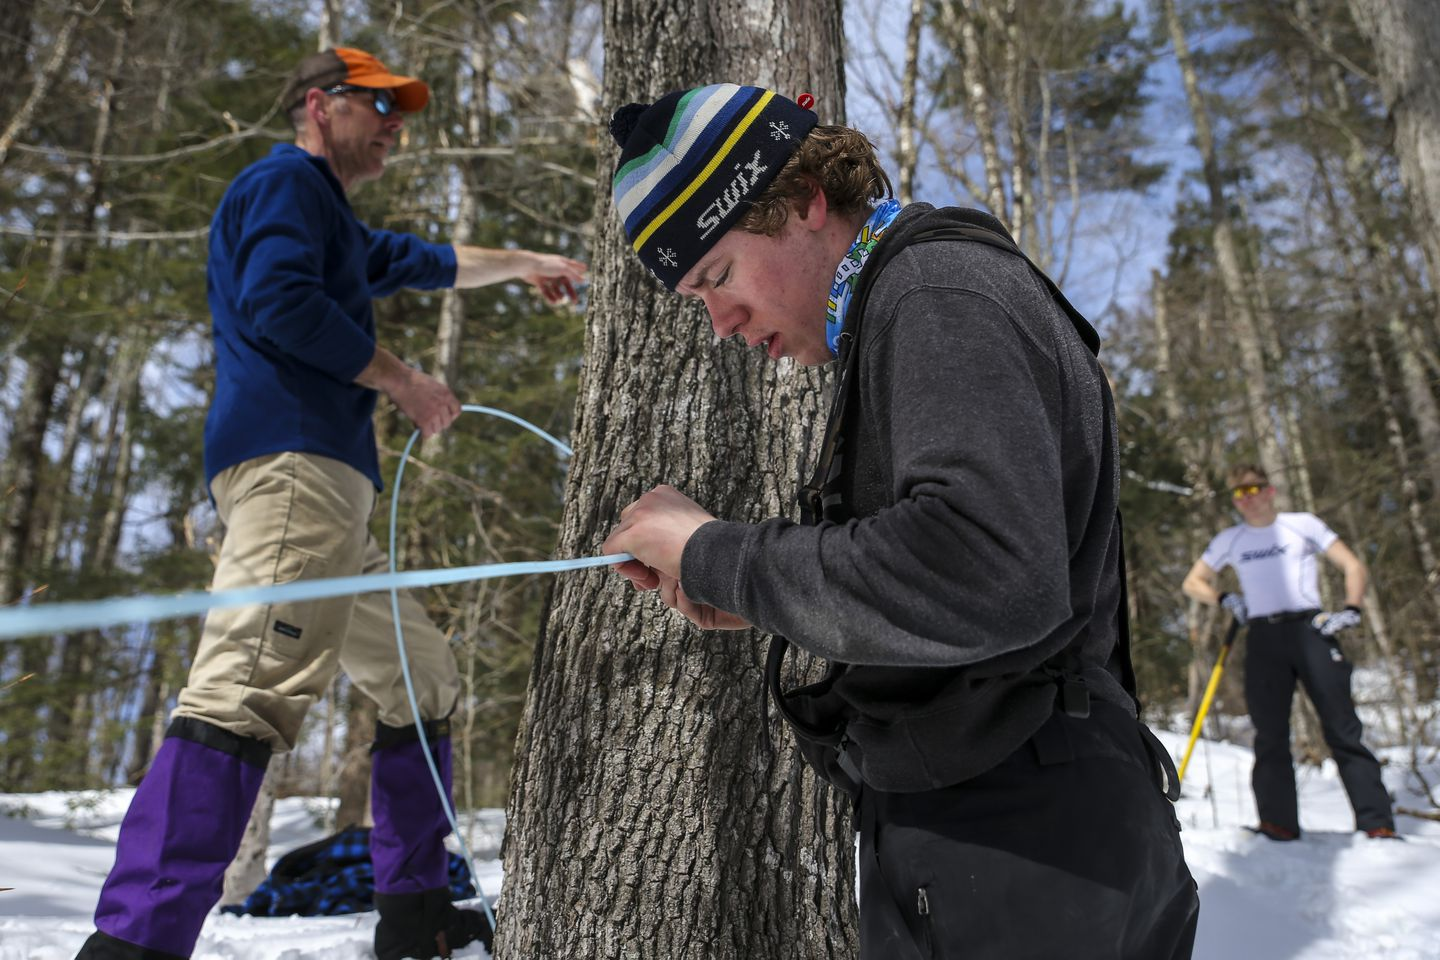 Ben Ogden, 19, works on a maple line while his father, John Ogden (left), instructs Matias Ovrum, 19, in Londonderry, VT on Tuesday afternoon.